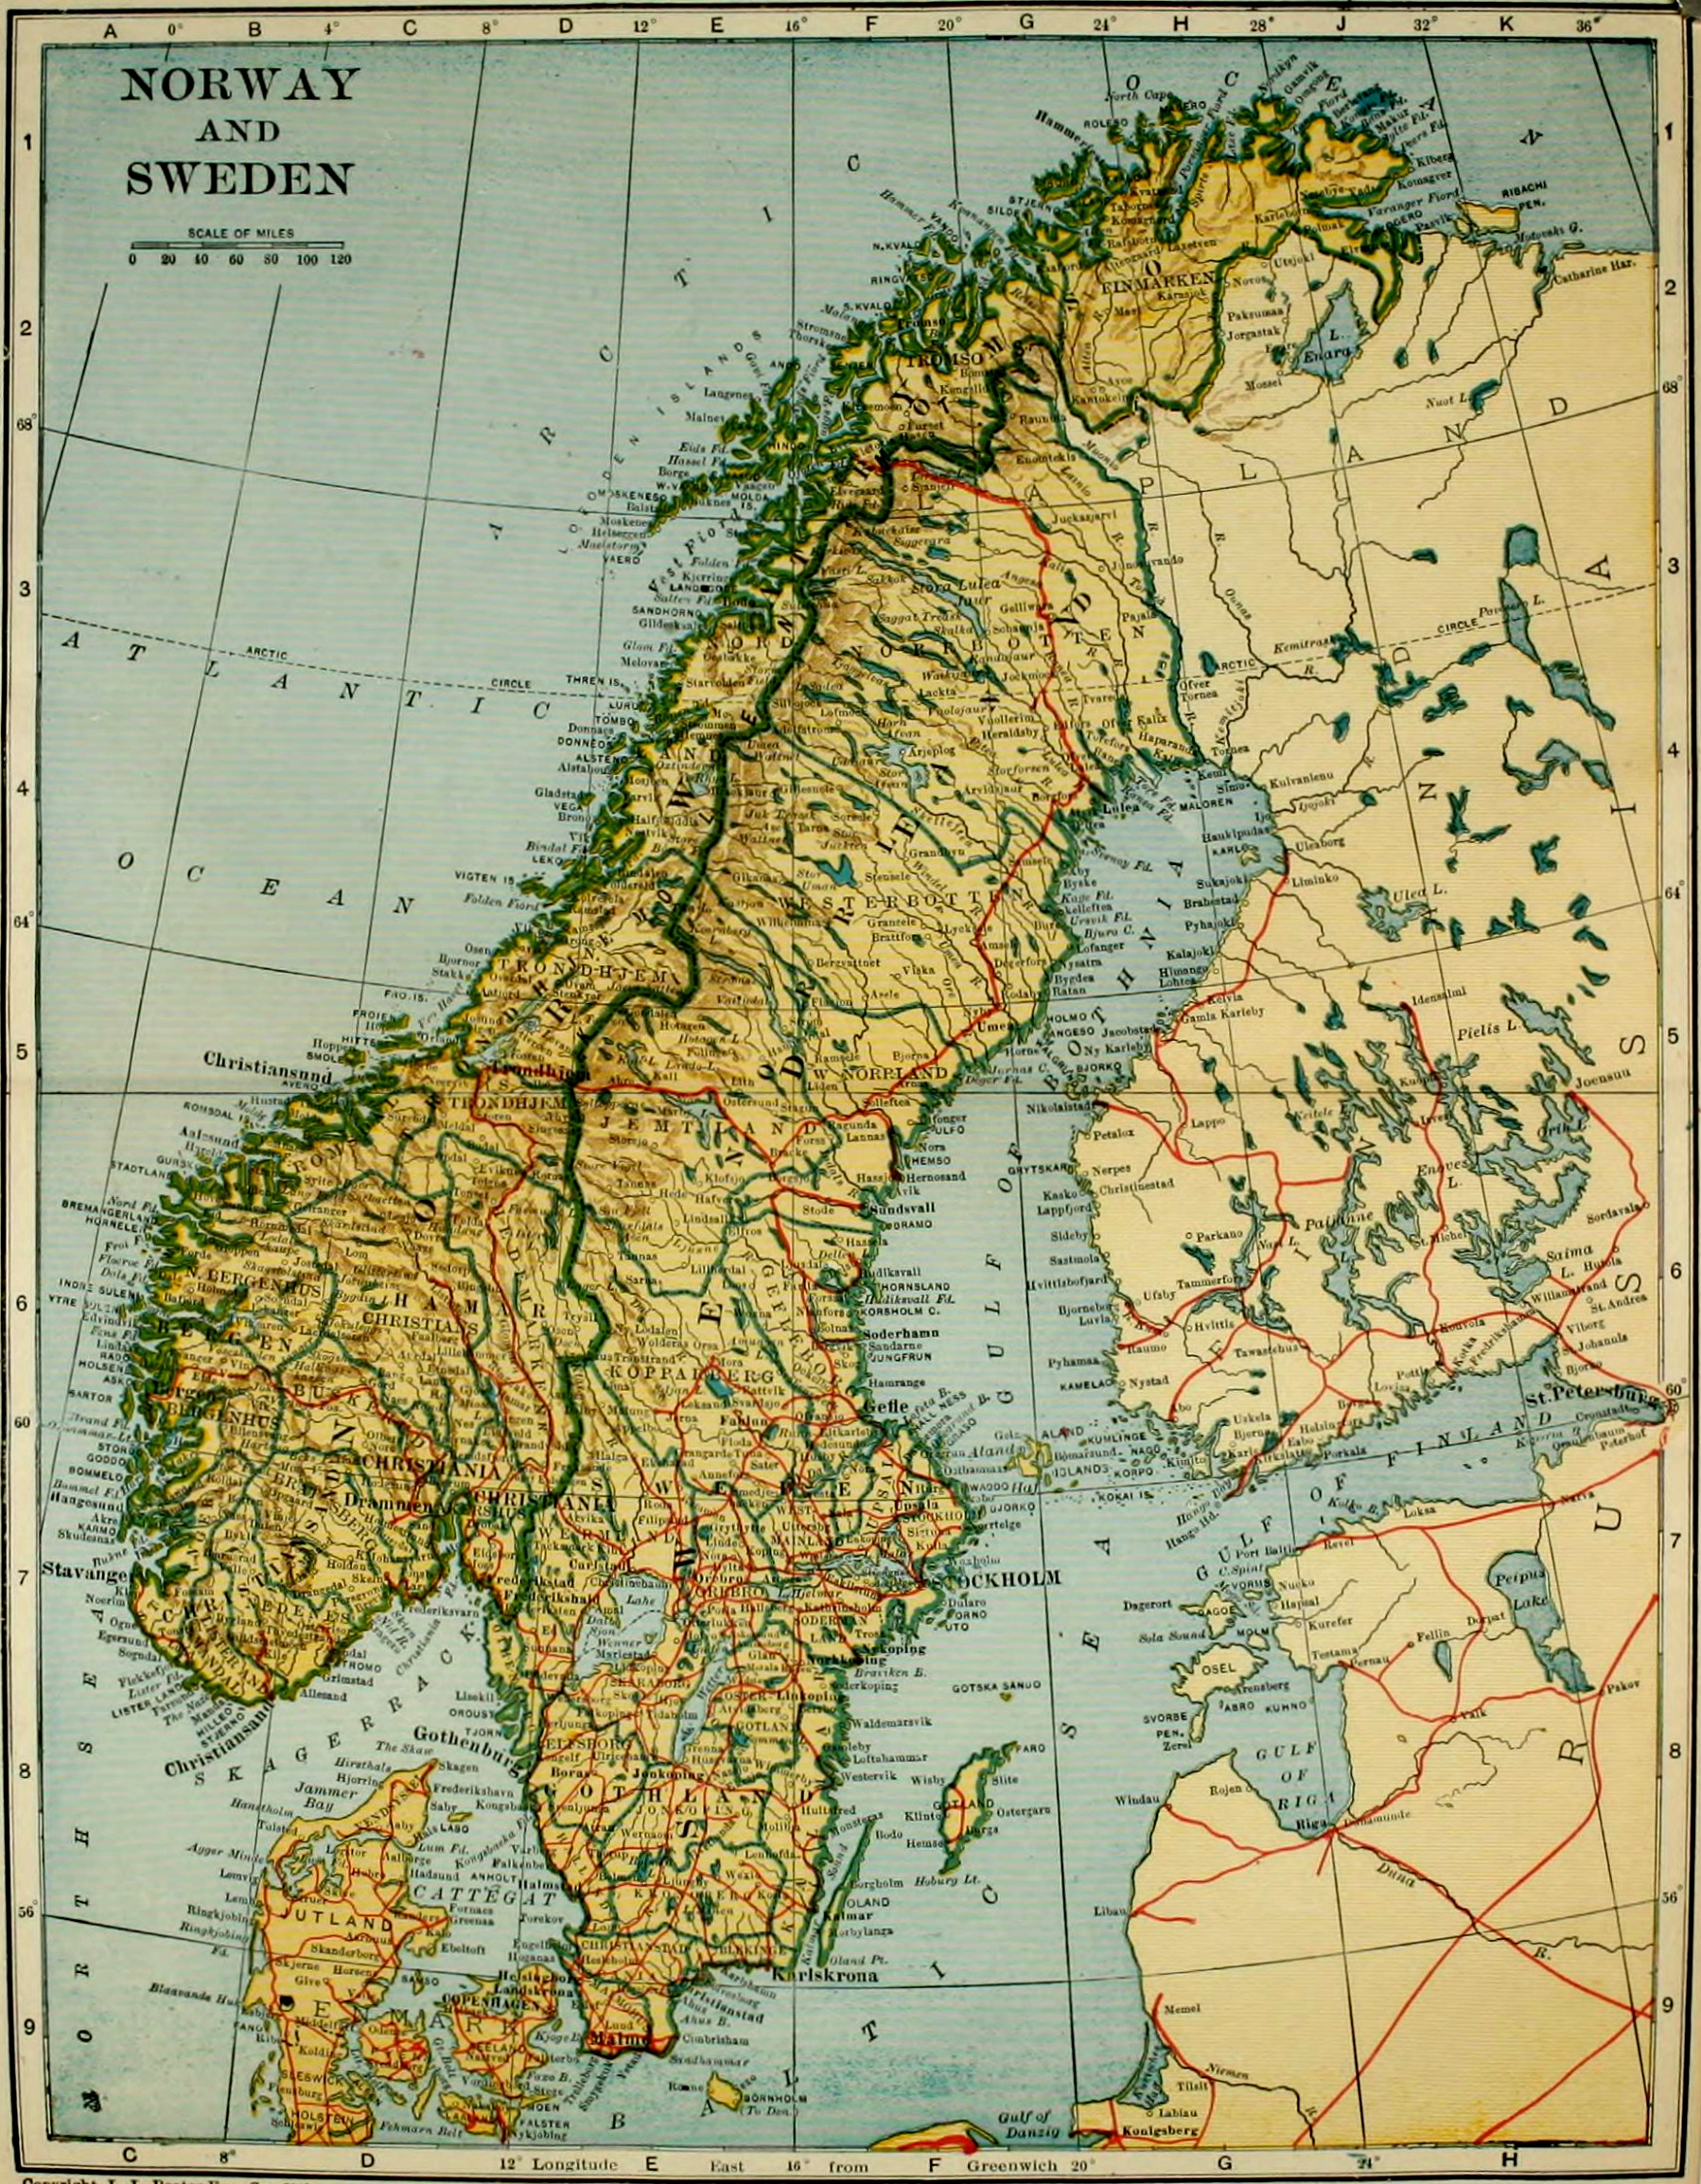 FileColliers Norway Map Of Norway And Swedenjpg - Norway map picture